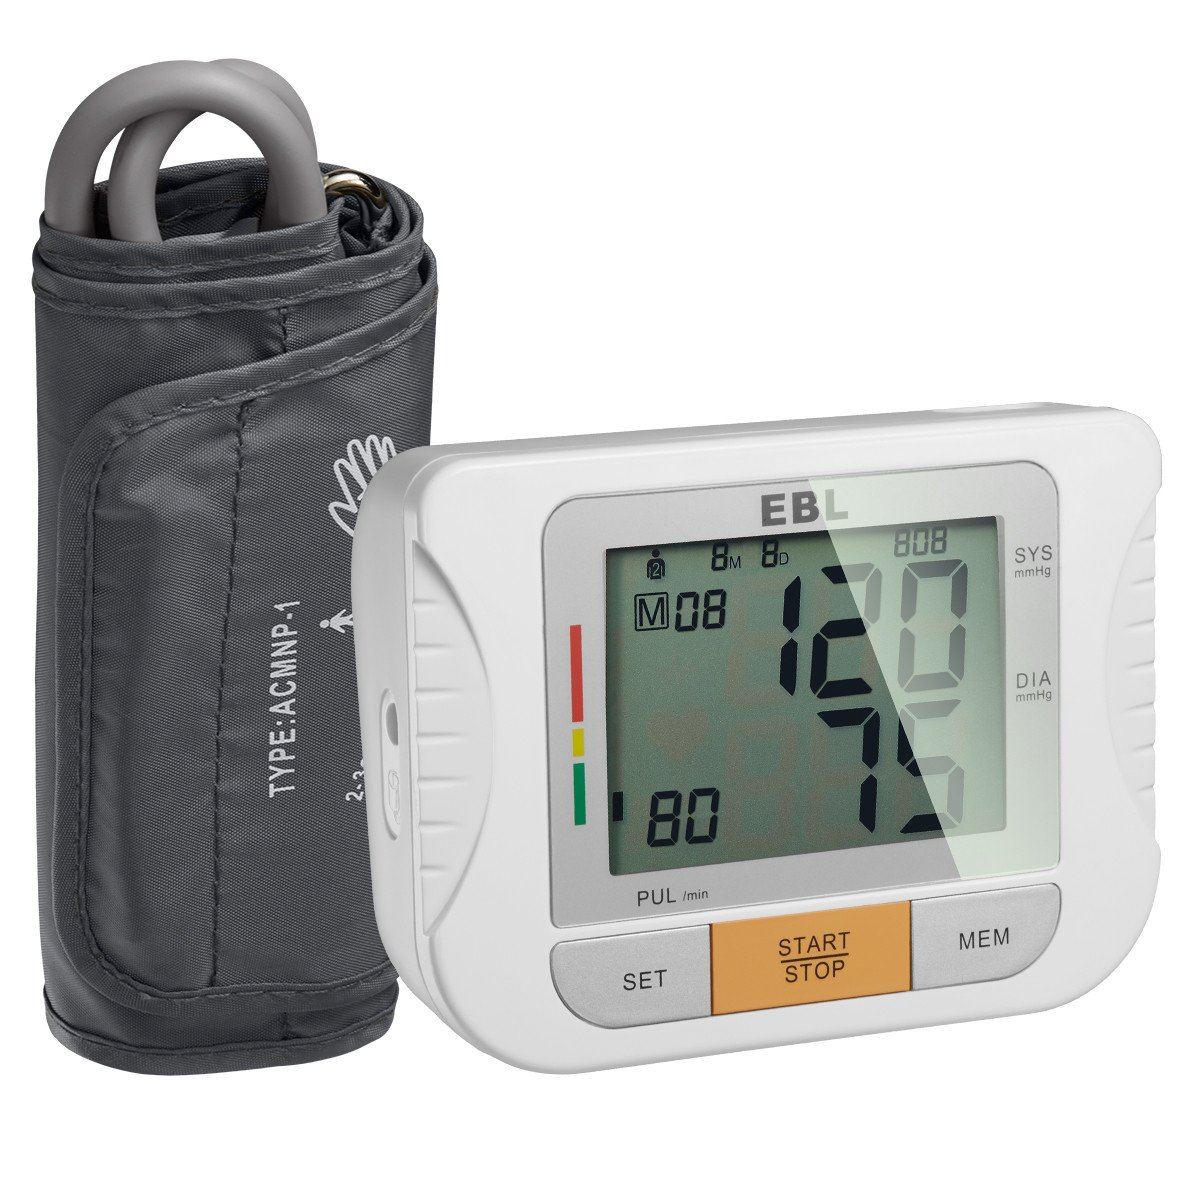 EBL Upper Arm Blood Pressure Monitor with Cuff - Large LCD Display - Highly Accurate and Lightning Fast, FDA-Certified